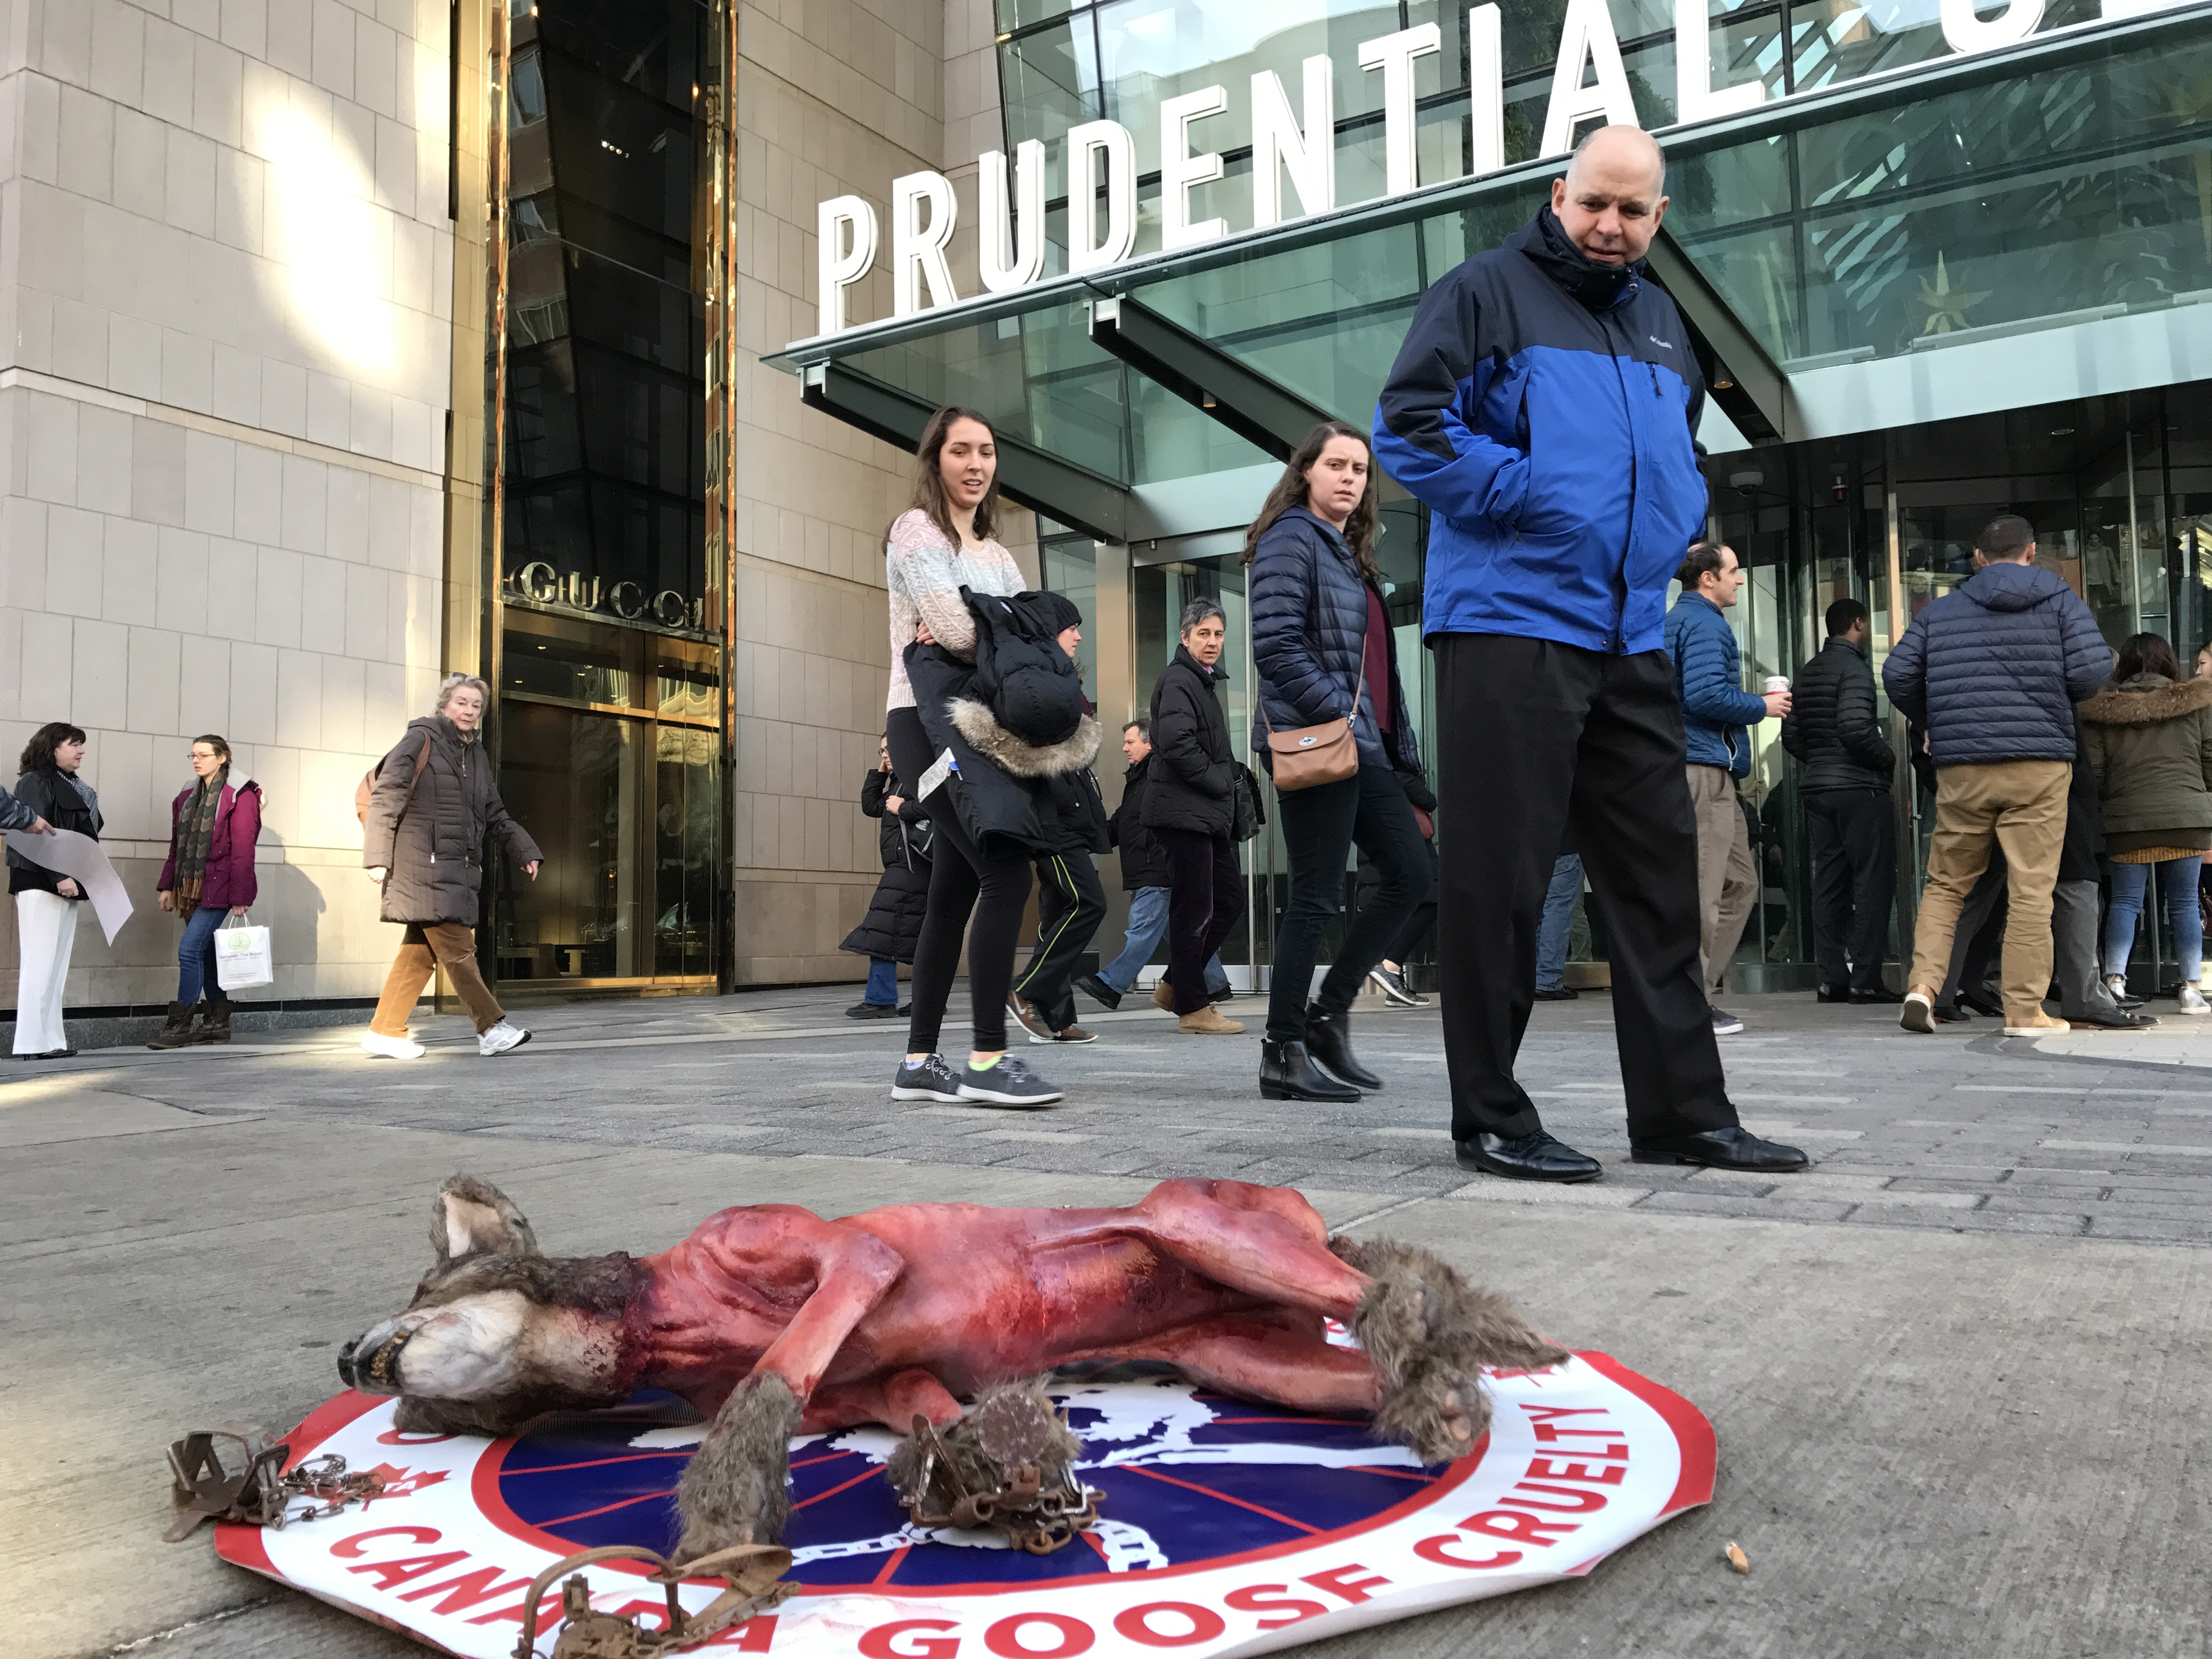 Click here to tell Canada Goose to stop selling fur and goose down.